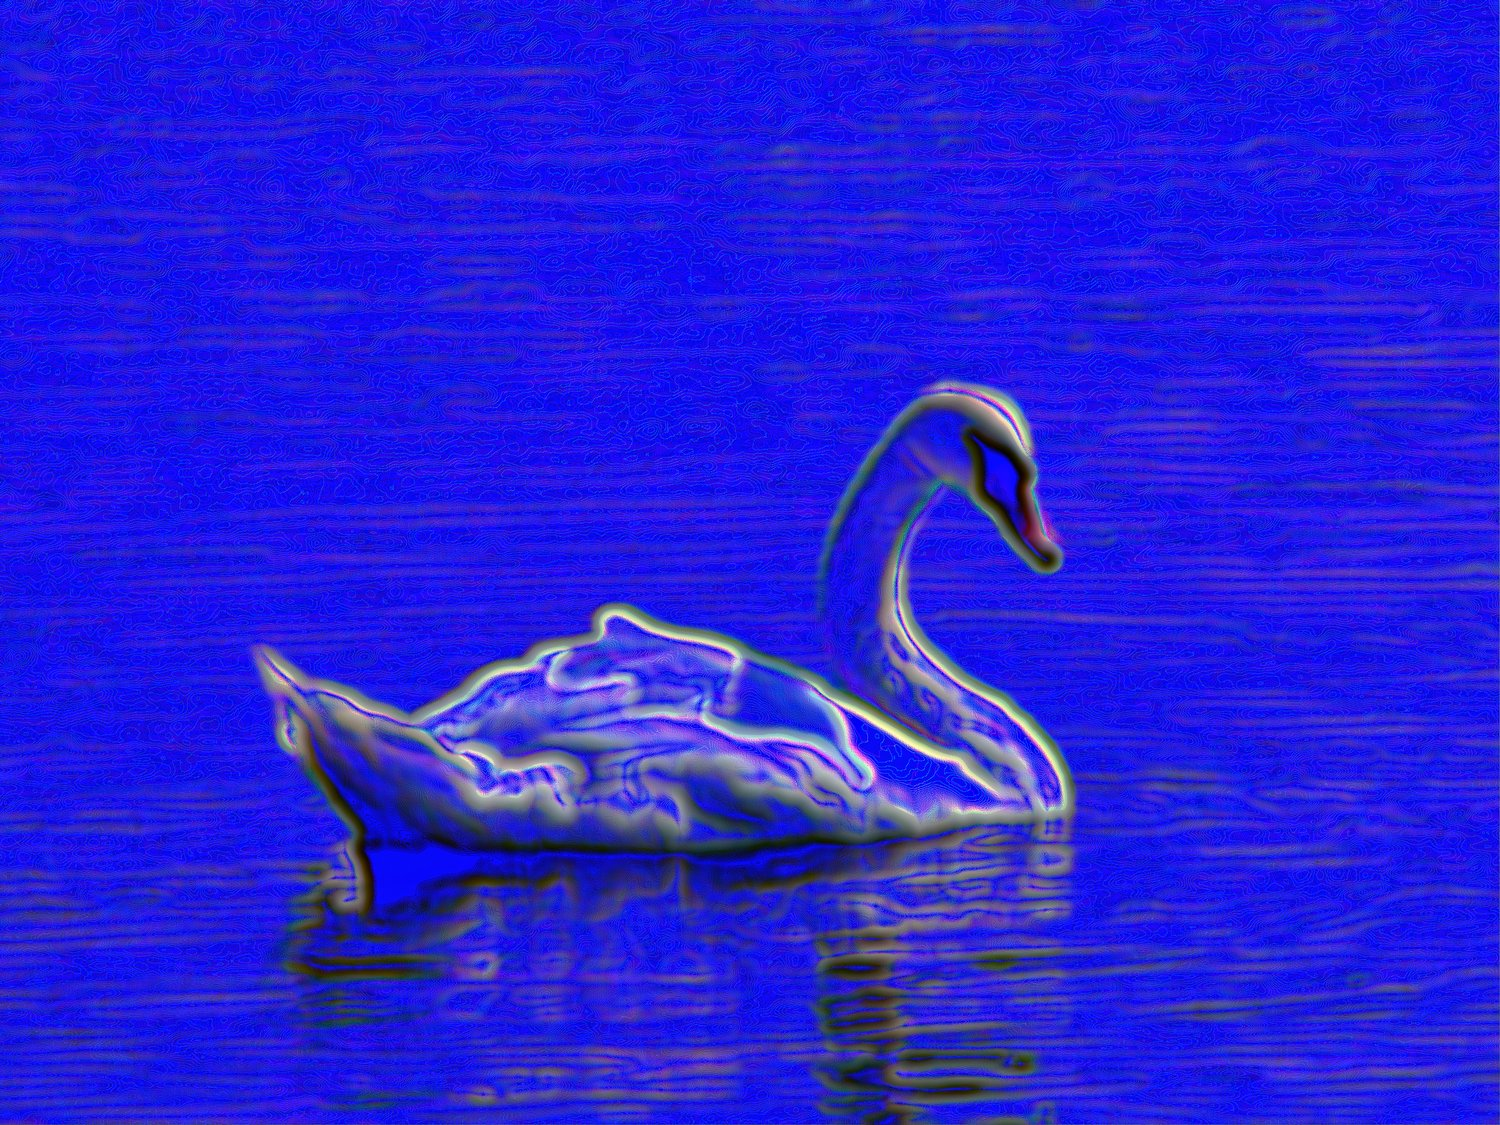 electric swan - Electric  Swan<p>   Electric Swans are very common in the northeast. <br>   And that is all I can say here, except that we have fewer power outages.  - exhibit in San Francisco - - - art  - photography - by Tony Karp